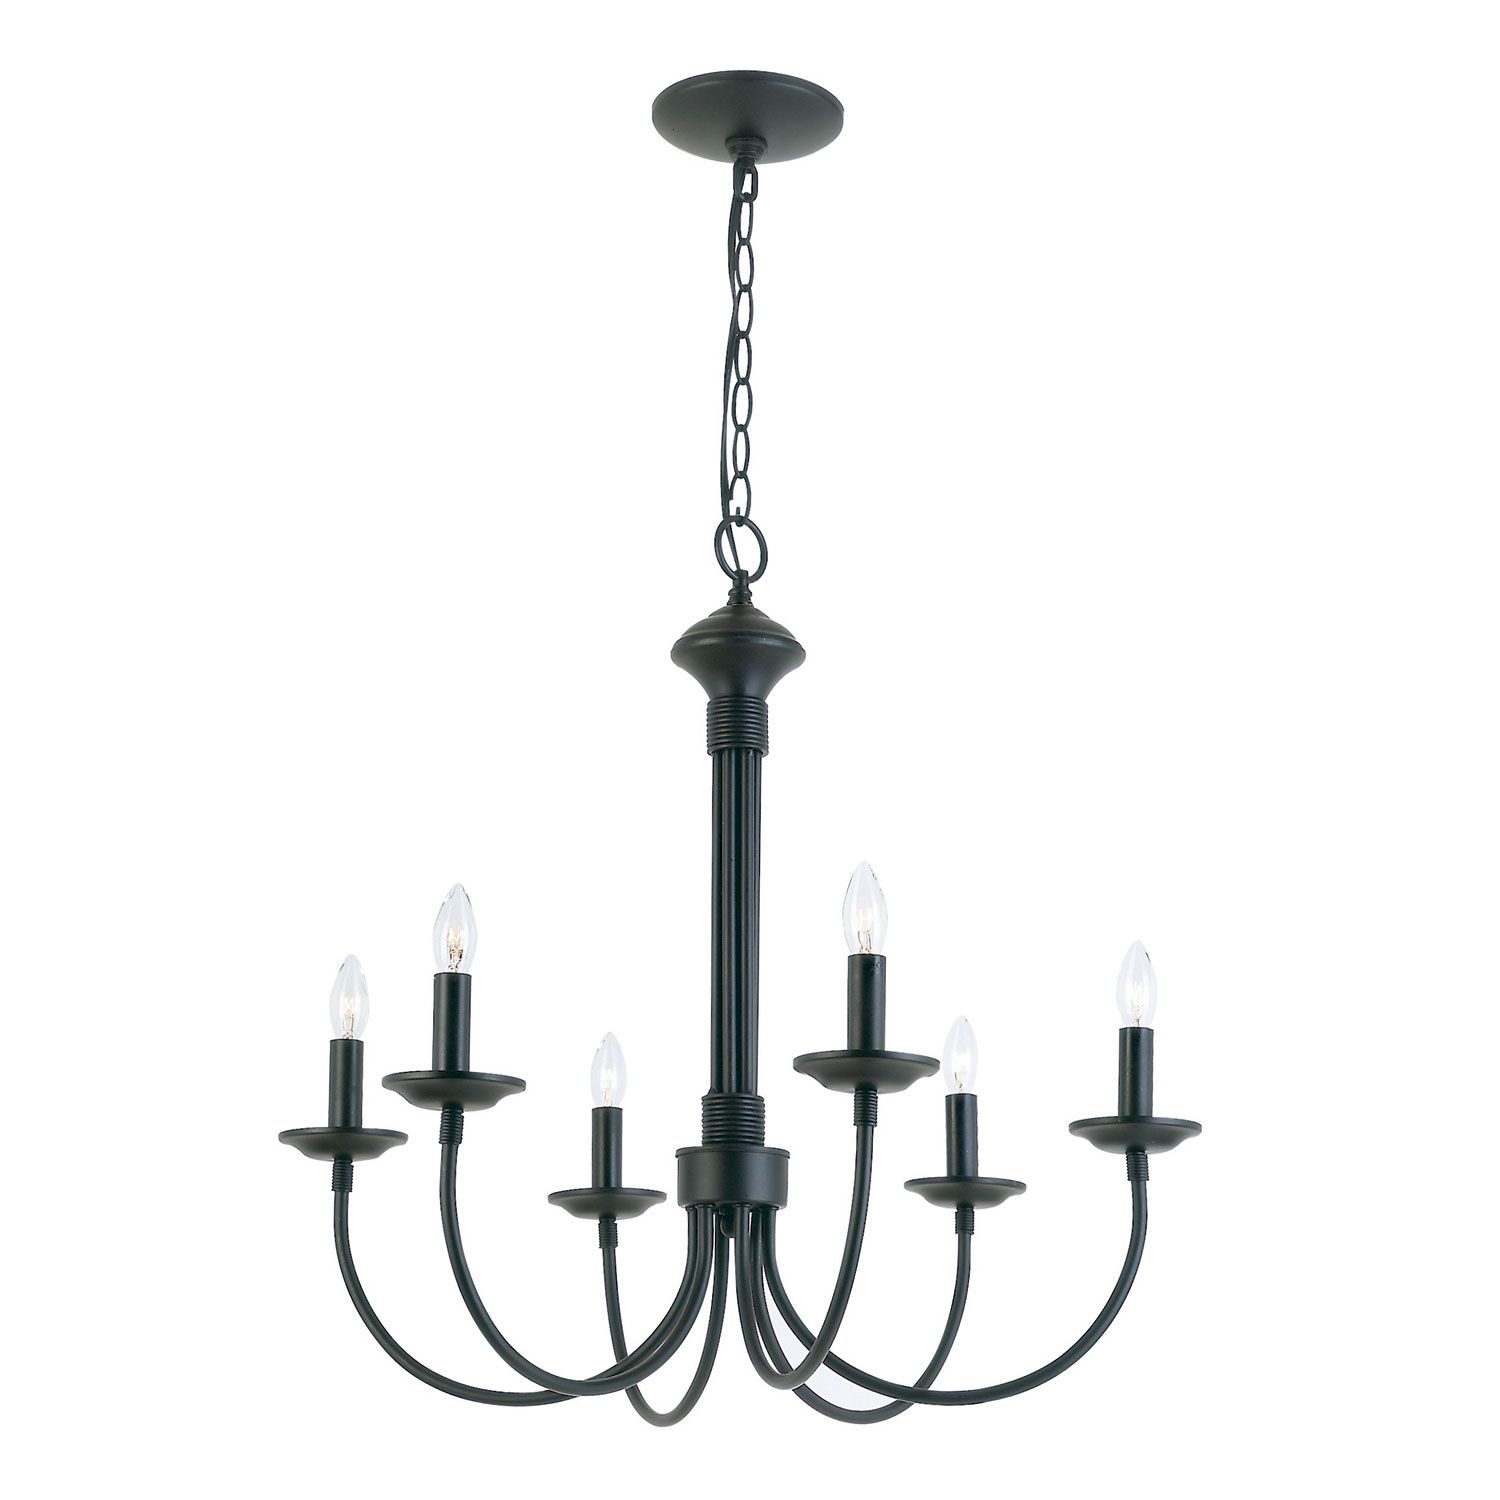 Trans globe lighting new century six light black chandelier on sale buy the trans globe lighting 9016 bk black direct shop for the trans globe lighting 9016 bk black traditional six light up lighting chandelier from the new aloadofball Images